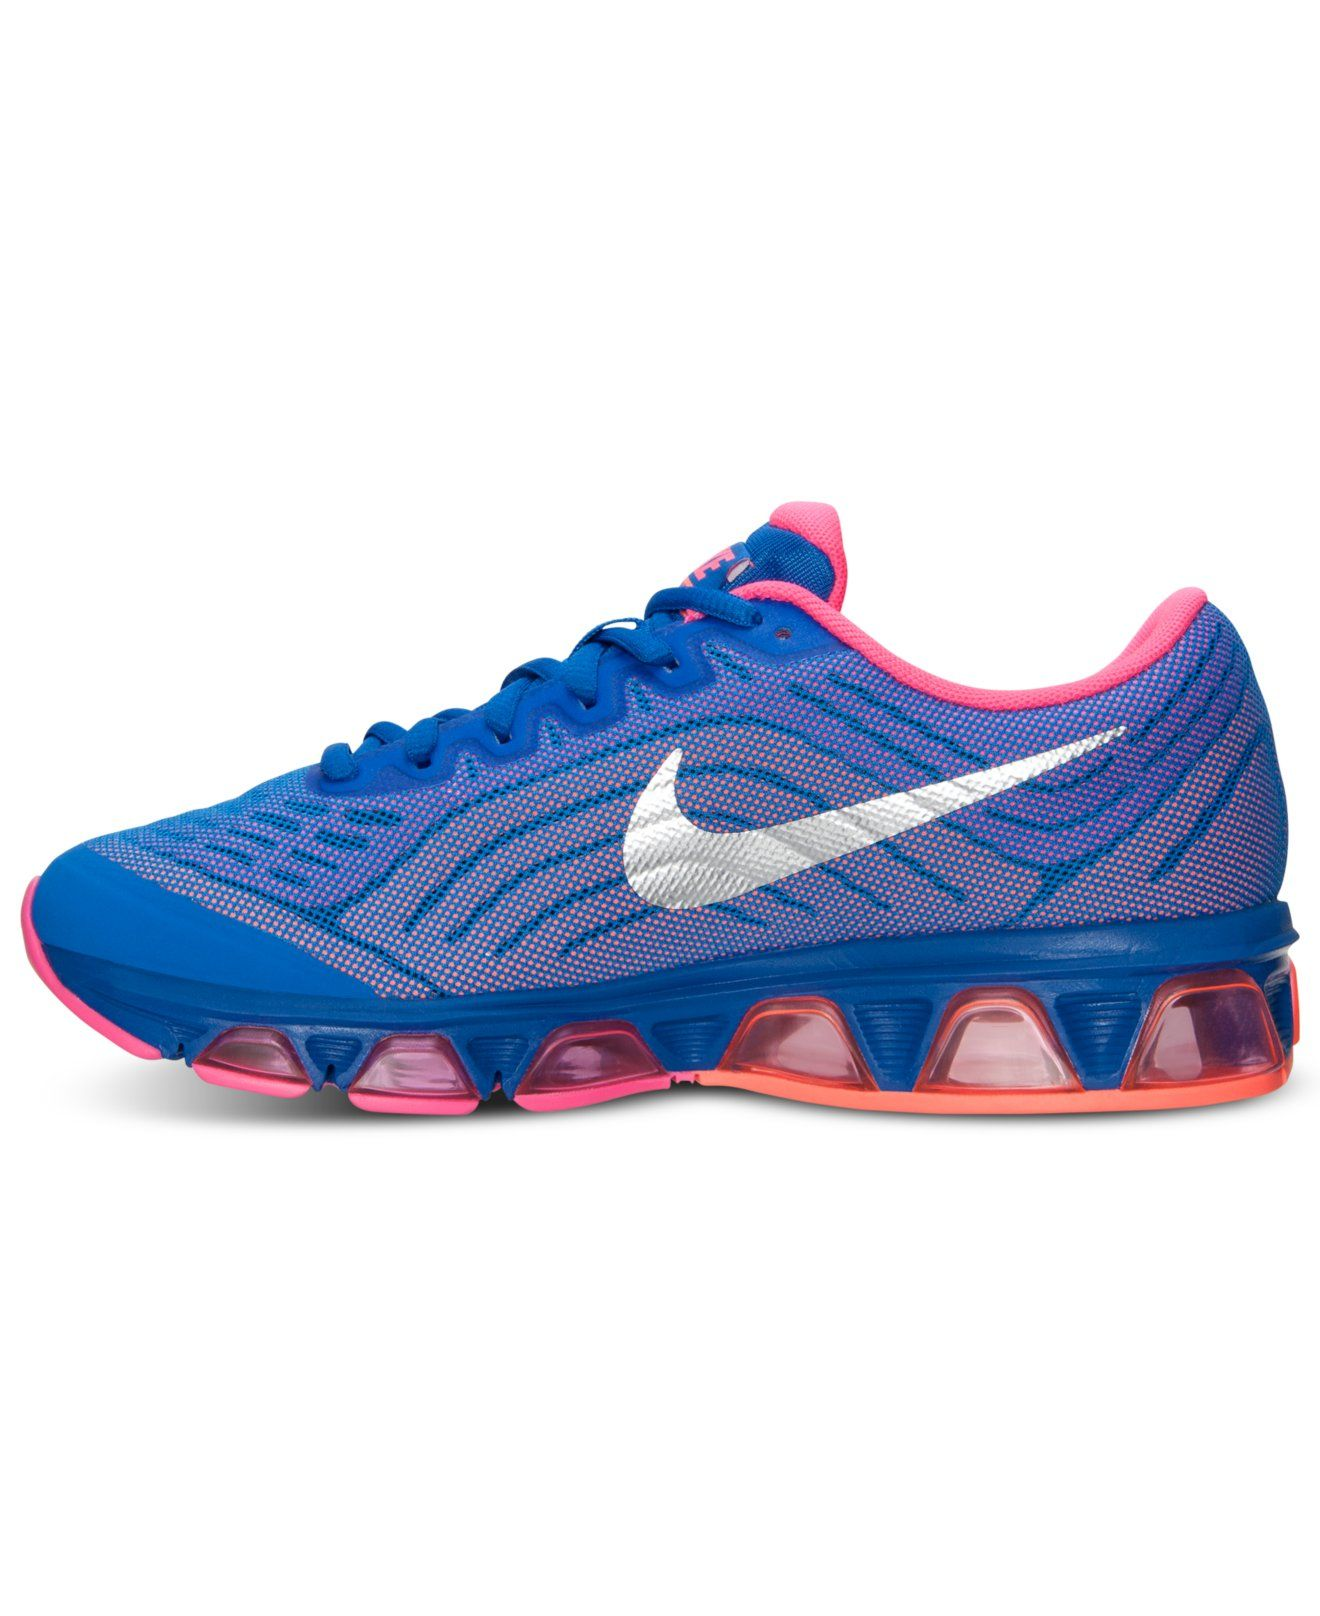 Nike Women's Air Max Tailwind 6 Running Sneakers from Finish Line Athletic  Shoes - Macy's $78.00